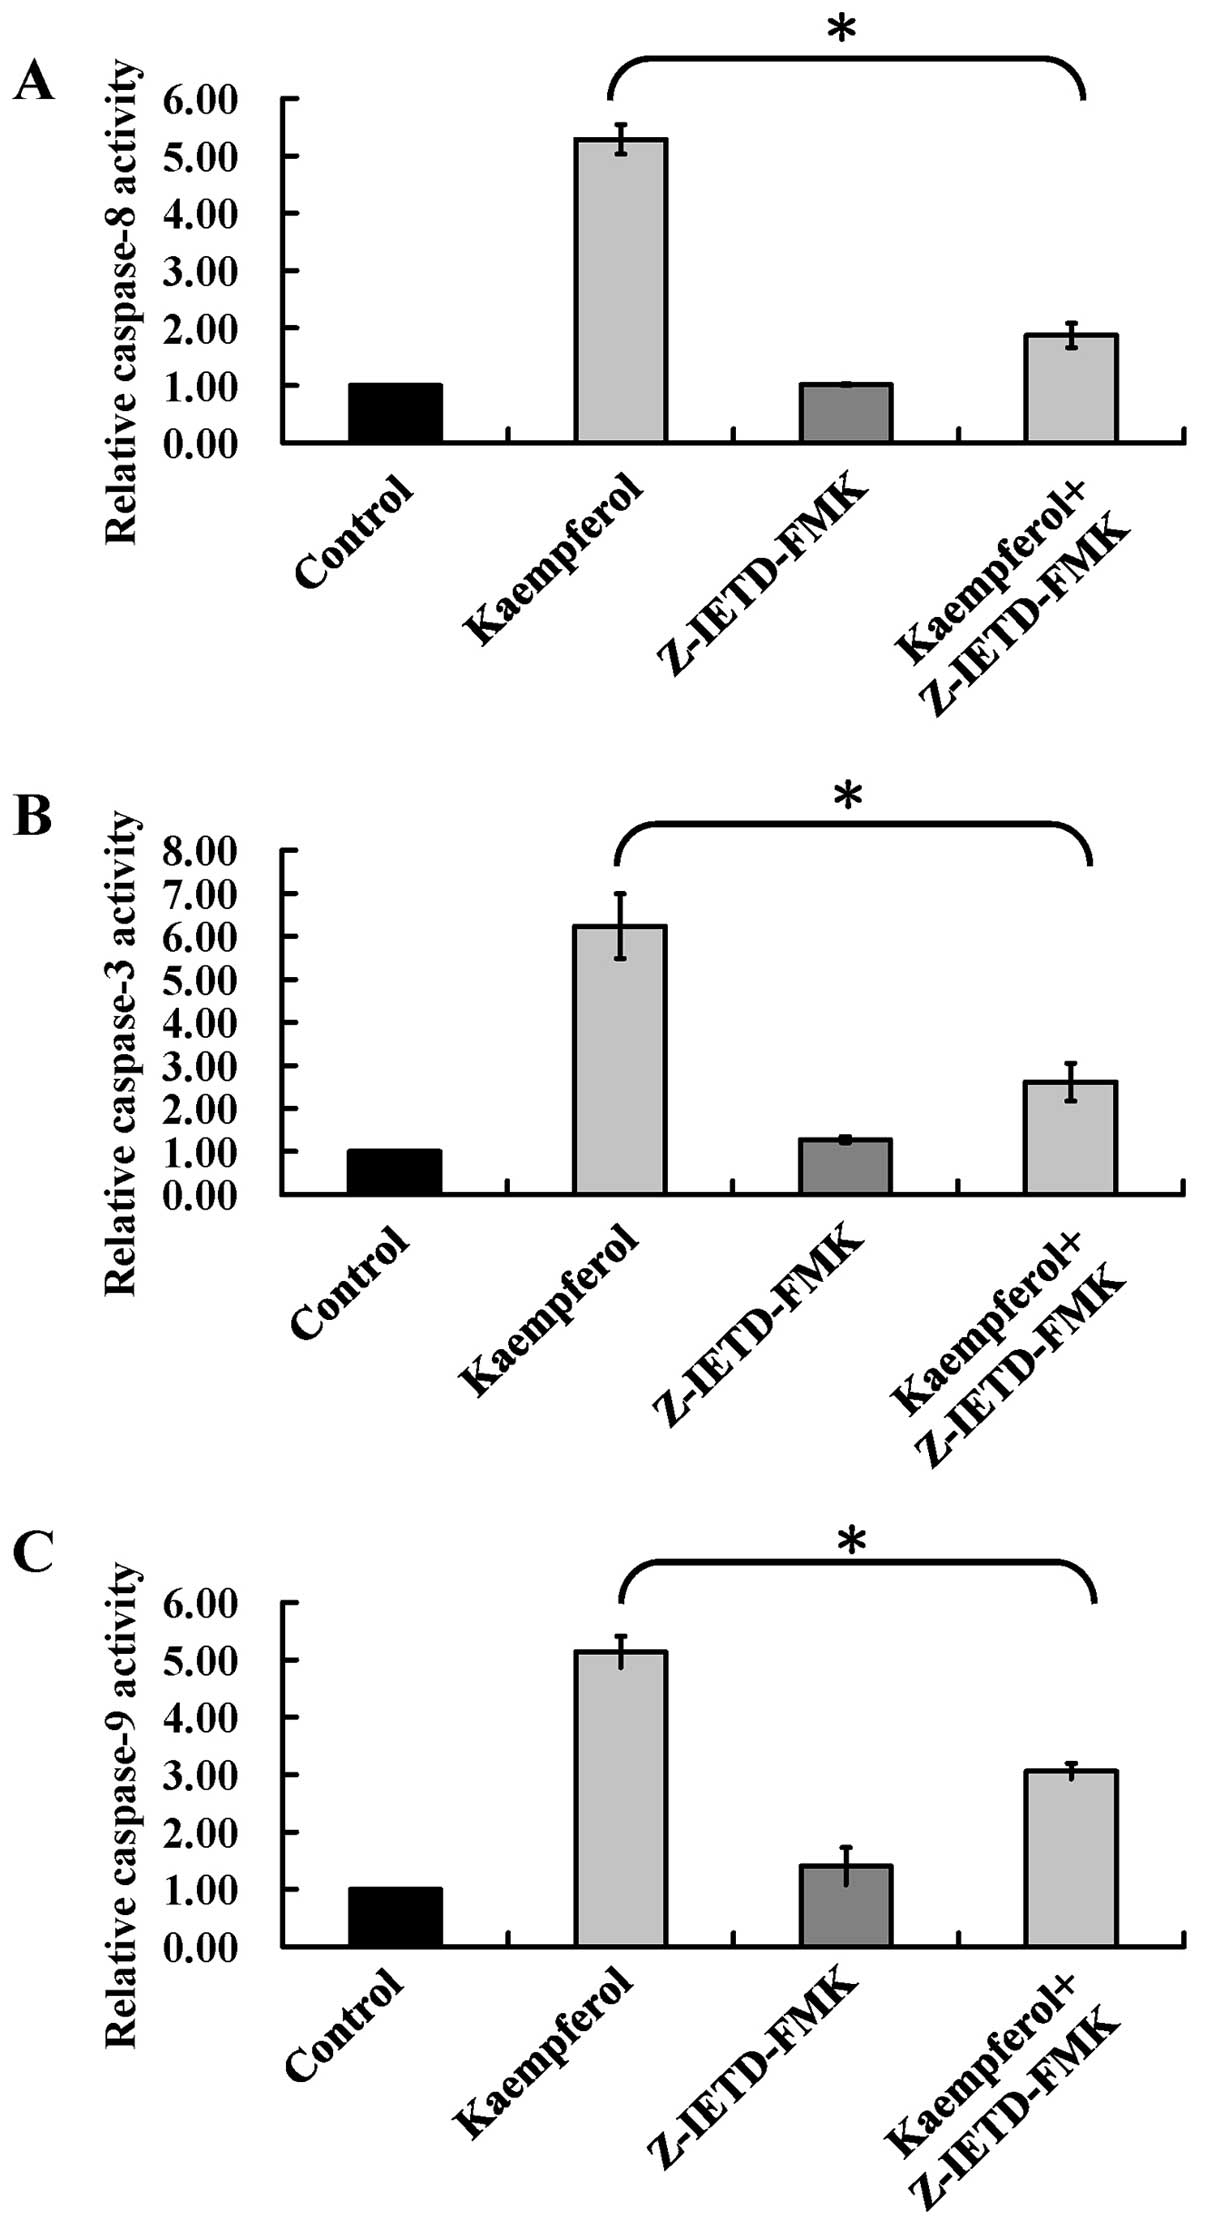 Kaempferol Induces Atm P53 Mediated Death Receptor And Mitochondrial Tt C Block Diagram Cells Were Harvested For Measuring The Caspase 8 A 9 B 3 Activities As Described In Materials Methods